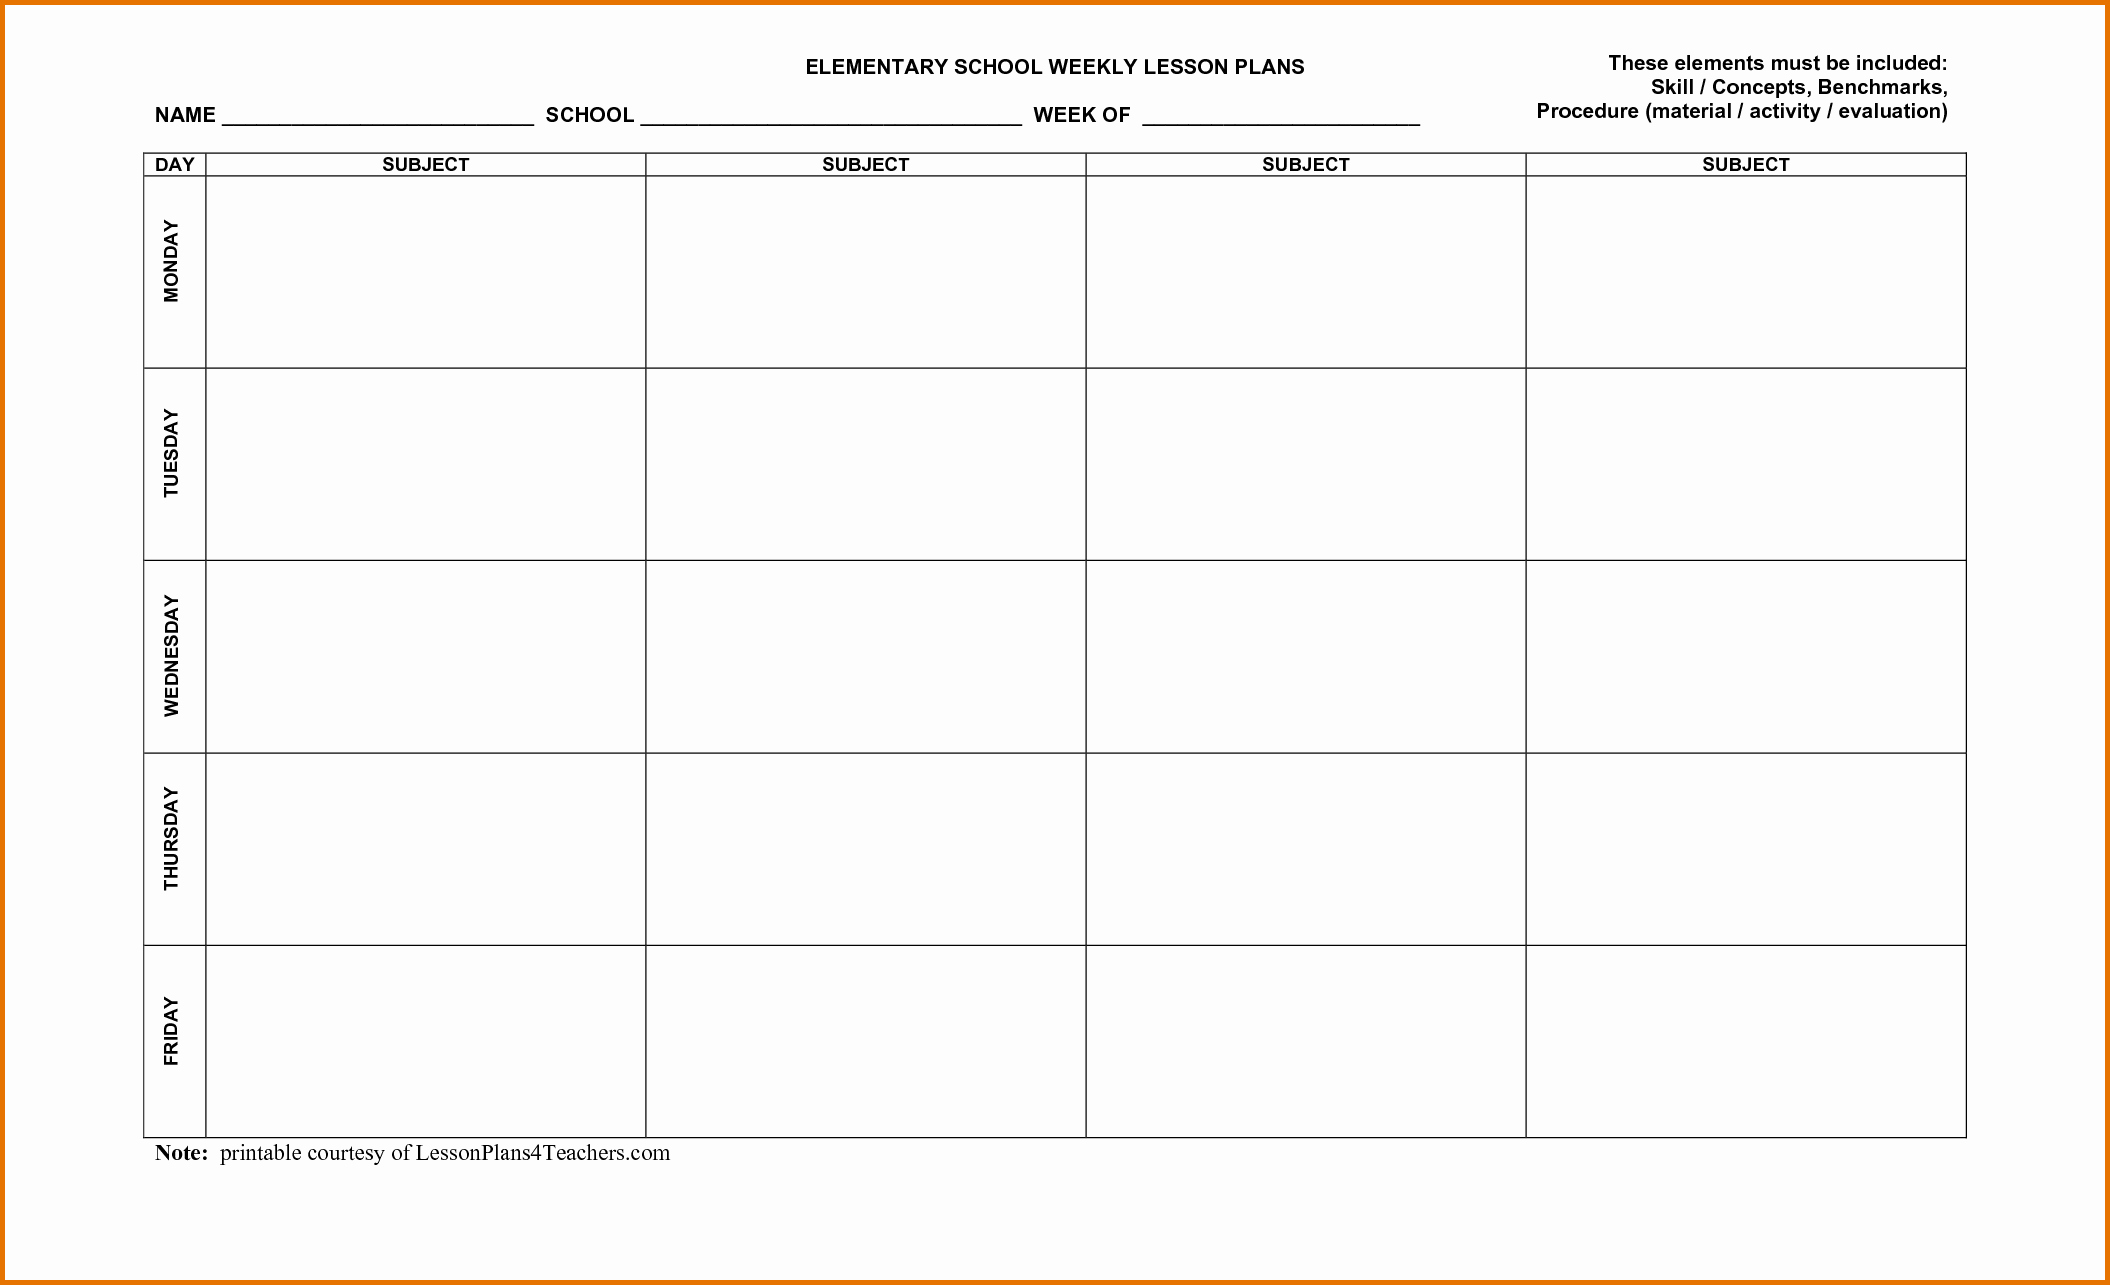 Lesson Plan Template Word Document Inspirational 3 Weekly Lesson Plan Template Wordreference Letters Words